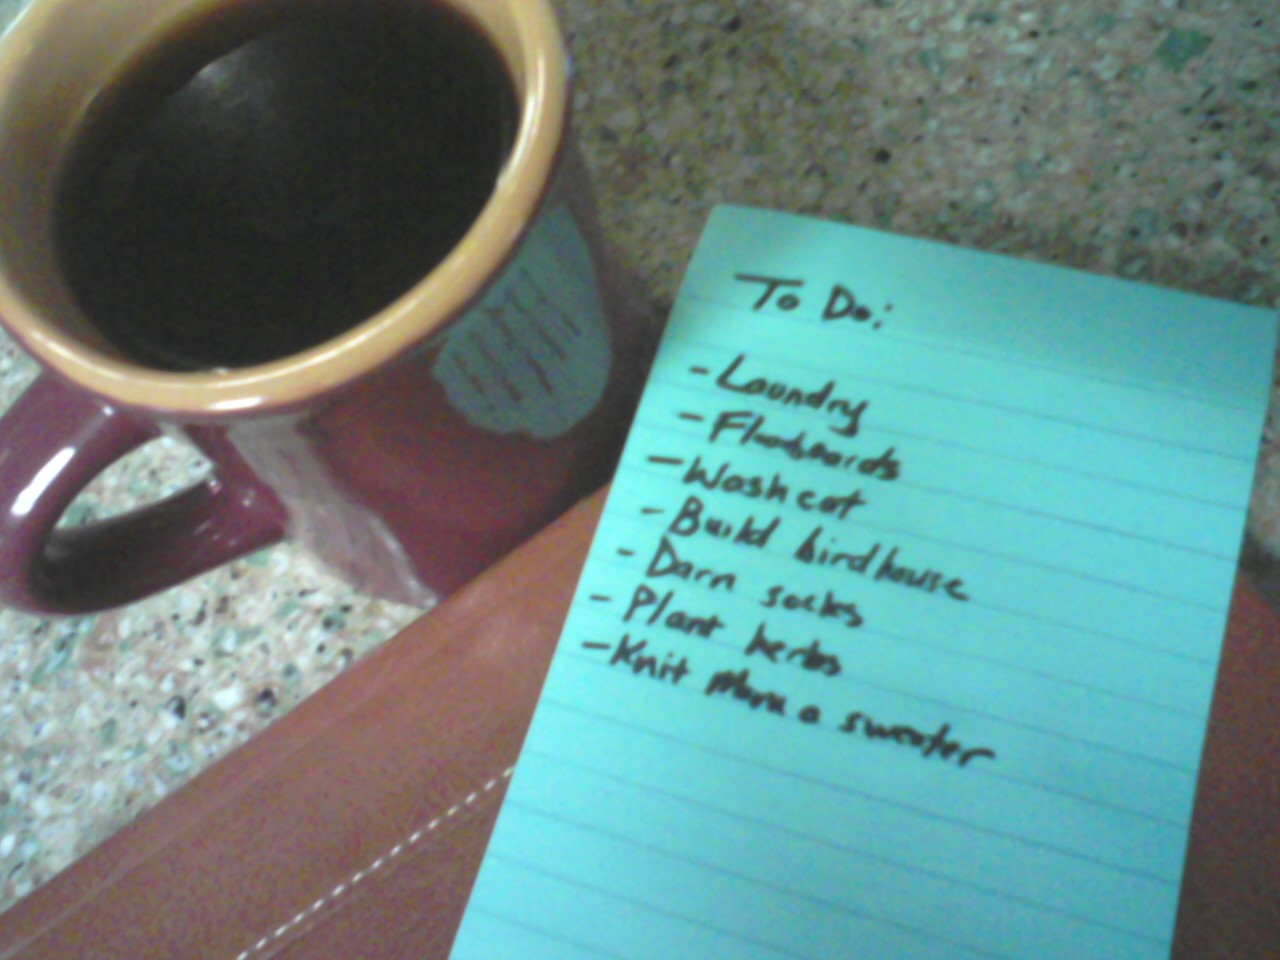 To-do List - Suzanne Terry